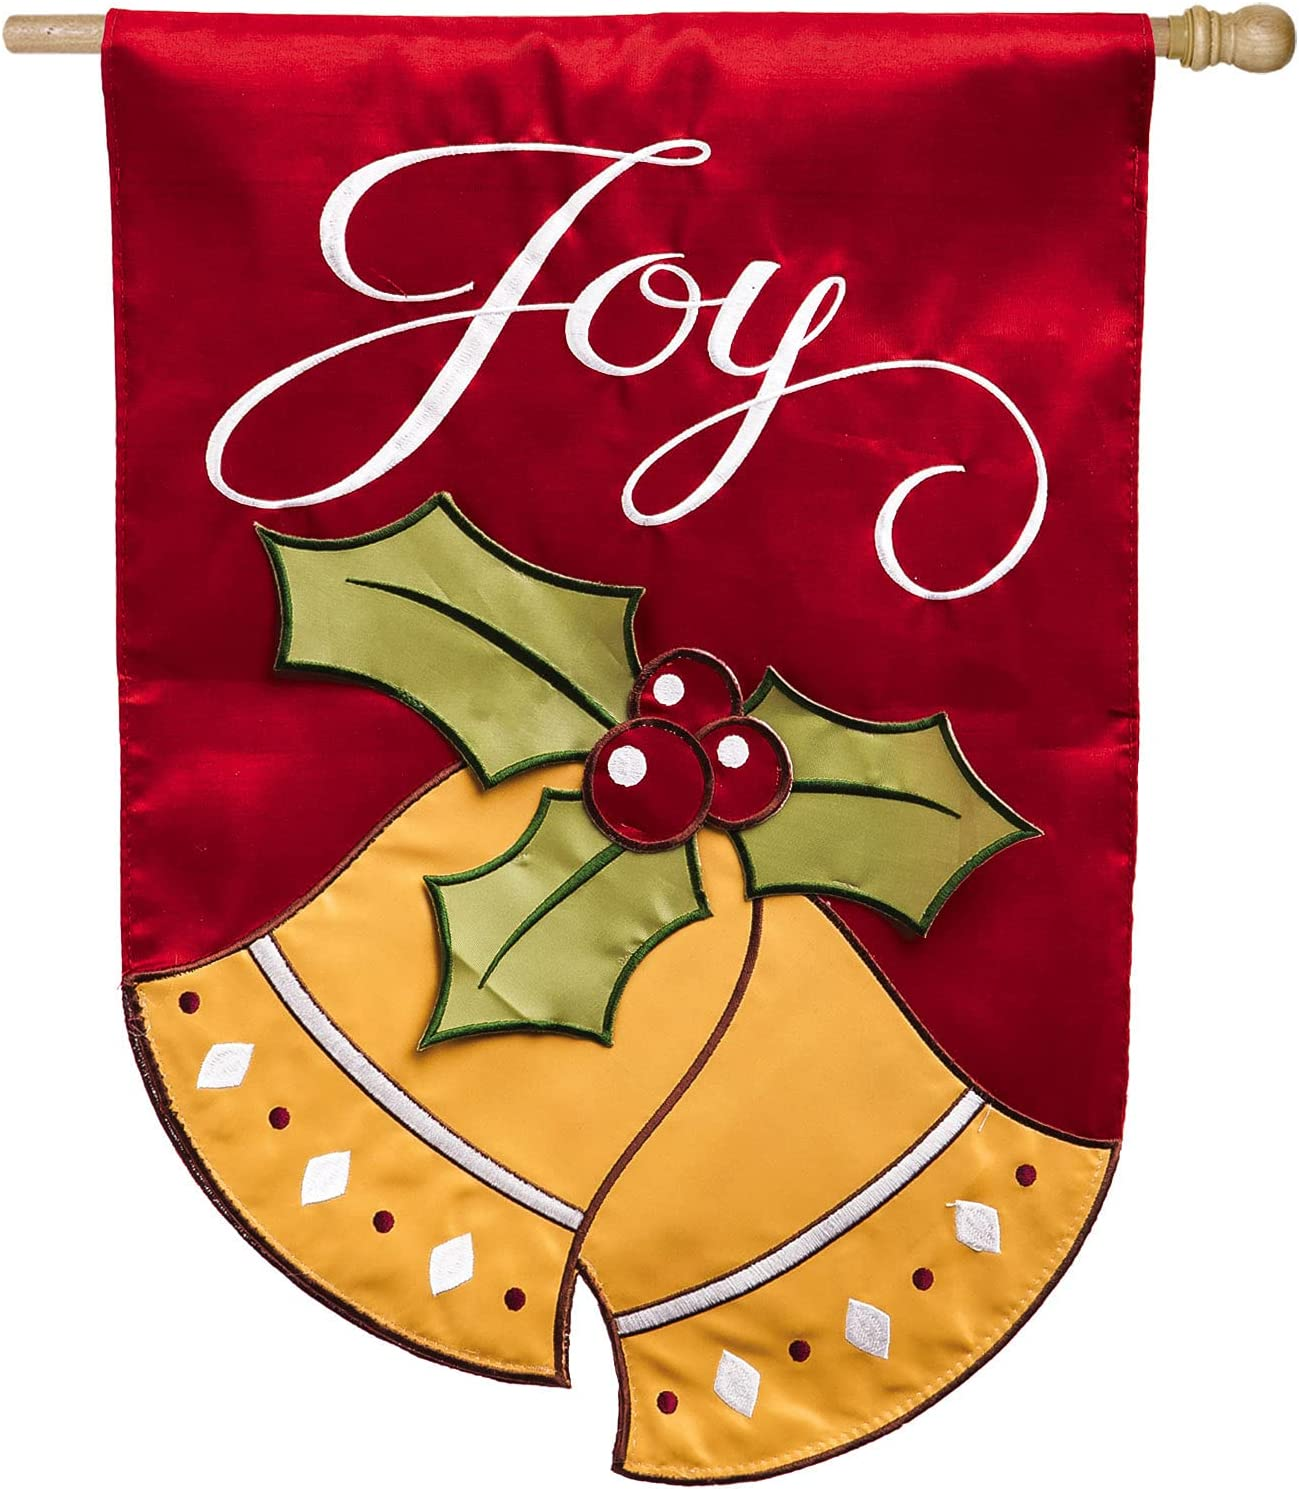 Evergreen Flag Time sale Joyful Christmas Applique Bells House New products world's highest quality popular